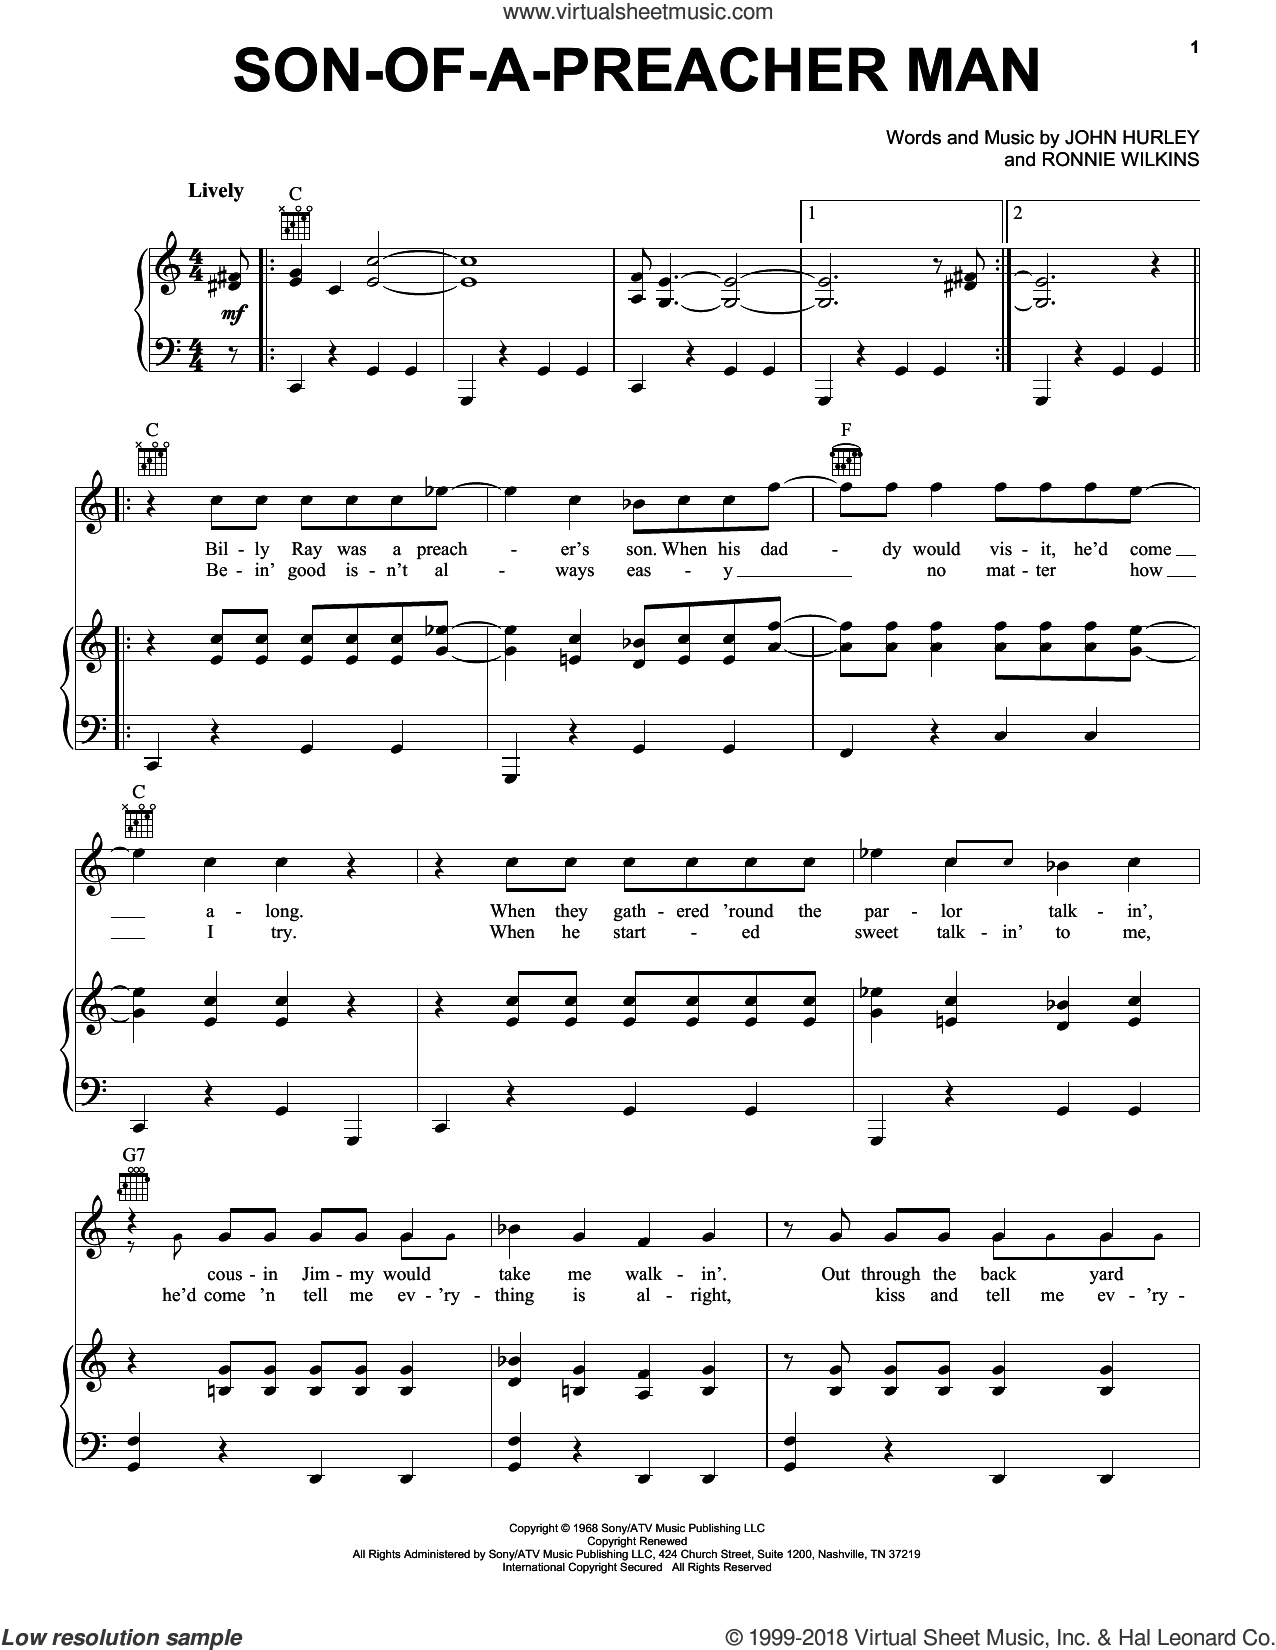 Son-Of-A-Preacher Man sheet music for voice, piano or guitar by Ronnie Wilkins